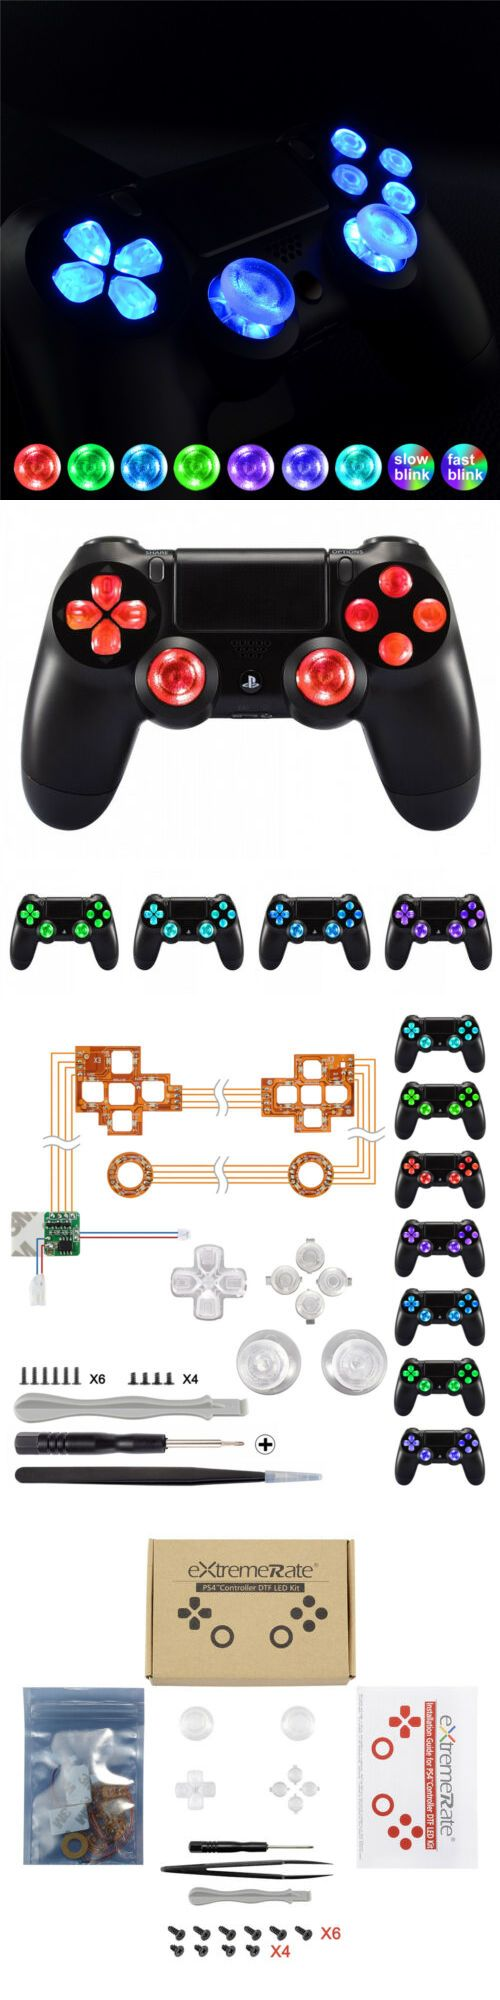 Replacement Parts and Tools 171833: Multi-Colors D-Pad